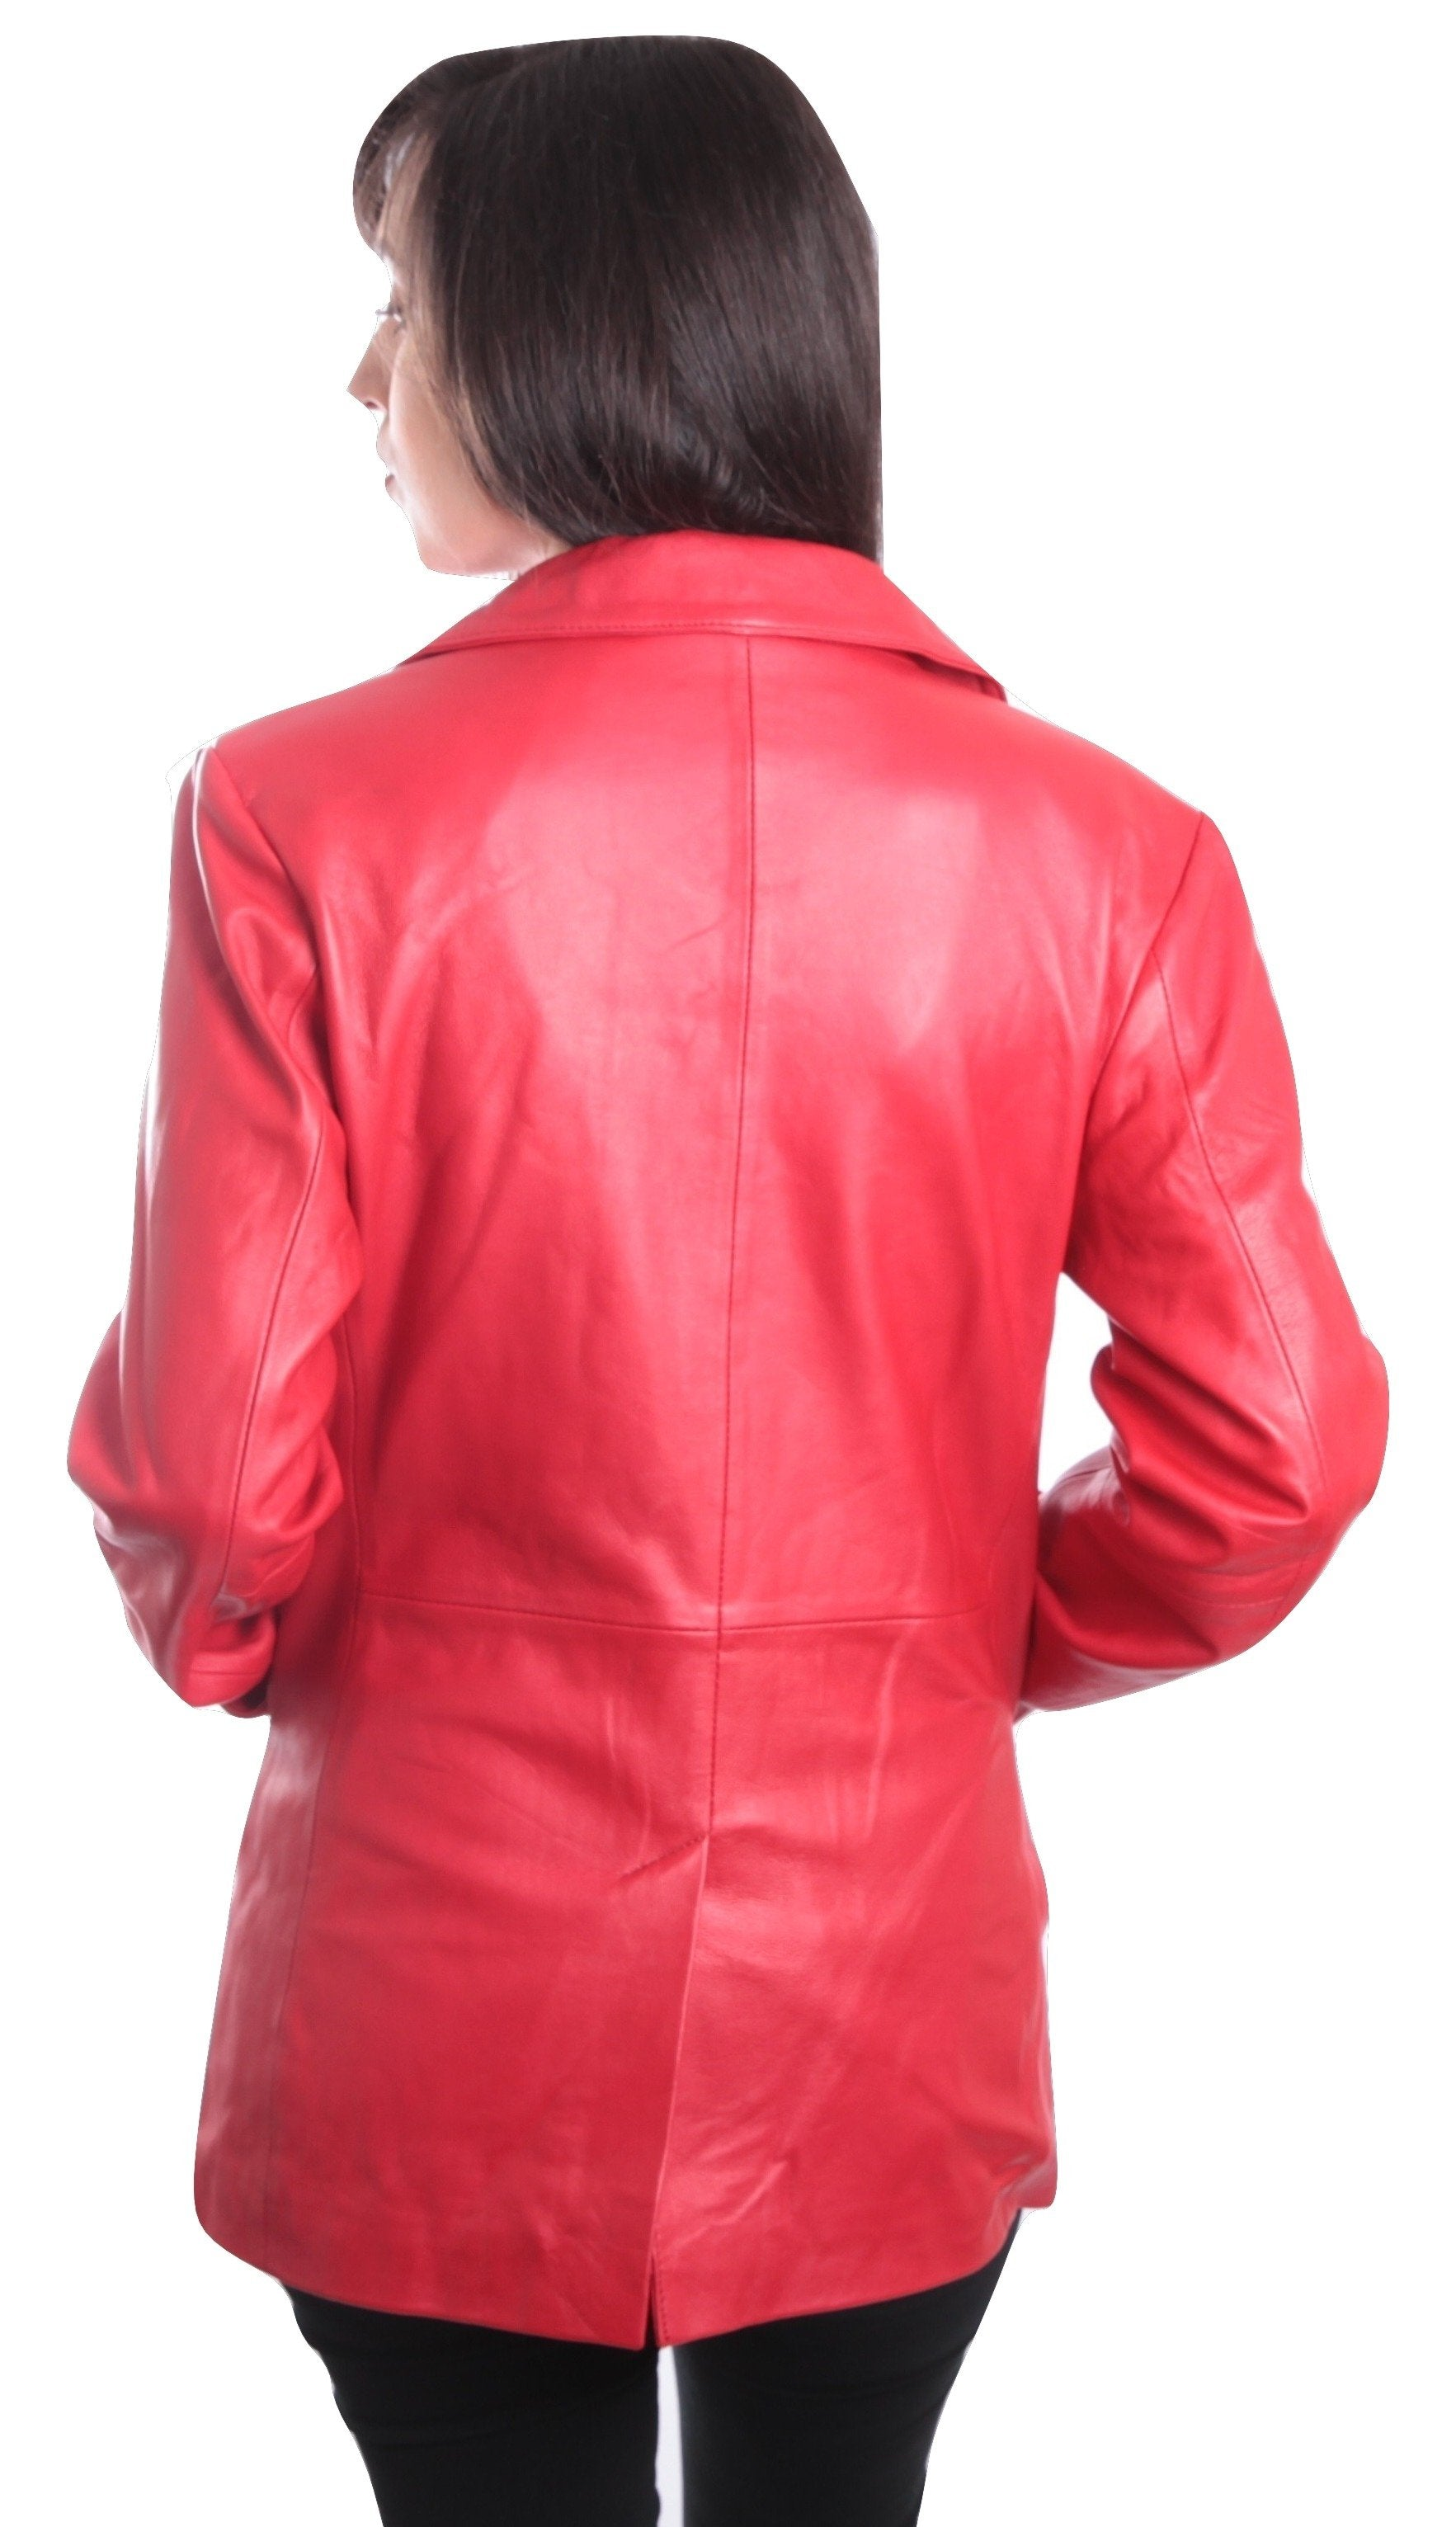 Womens Lipstick Red Hot 3 Button Leather Blazer - Fadcloset